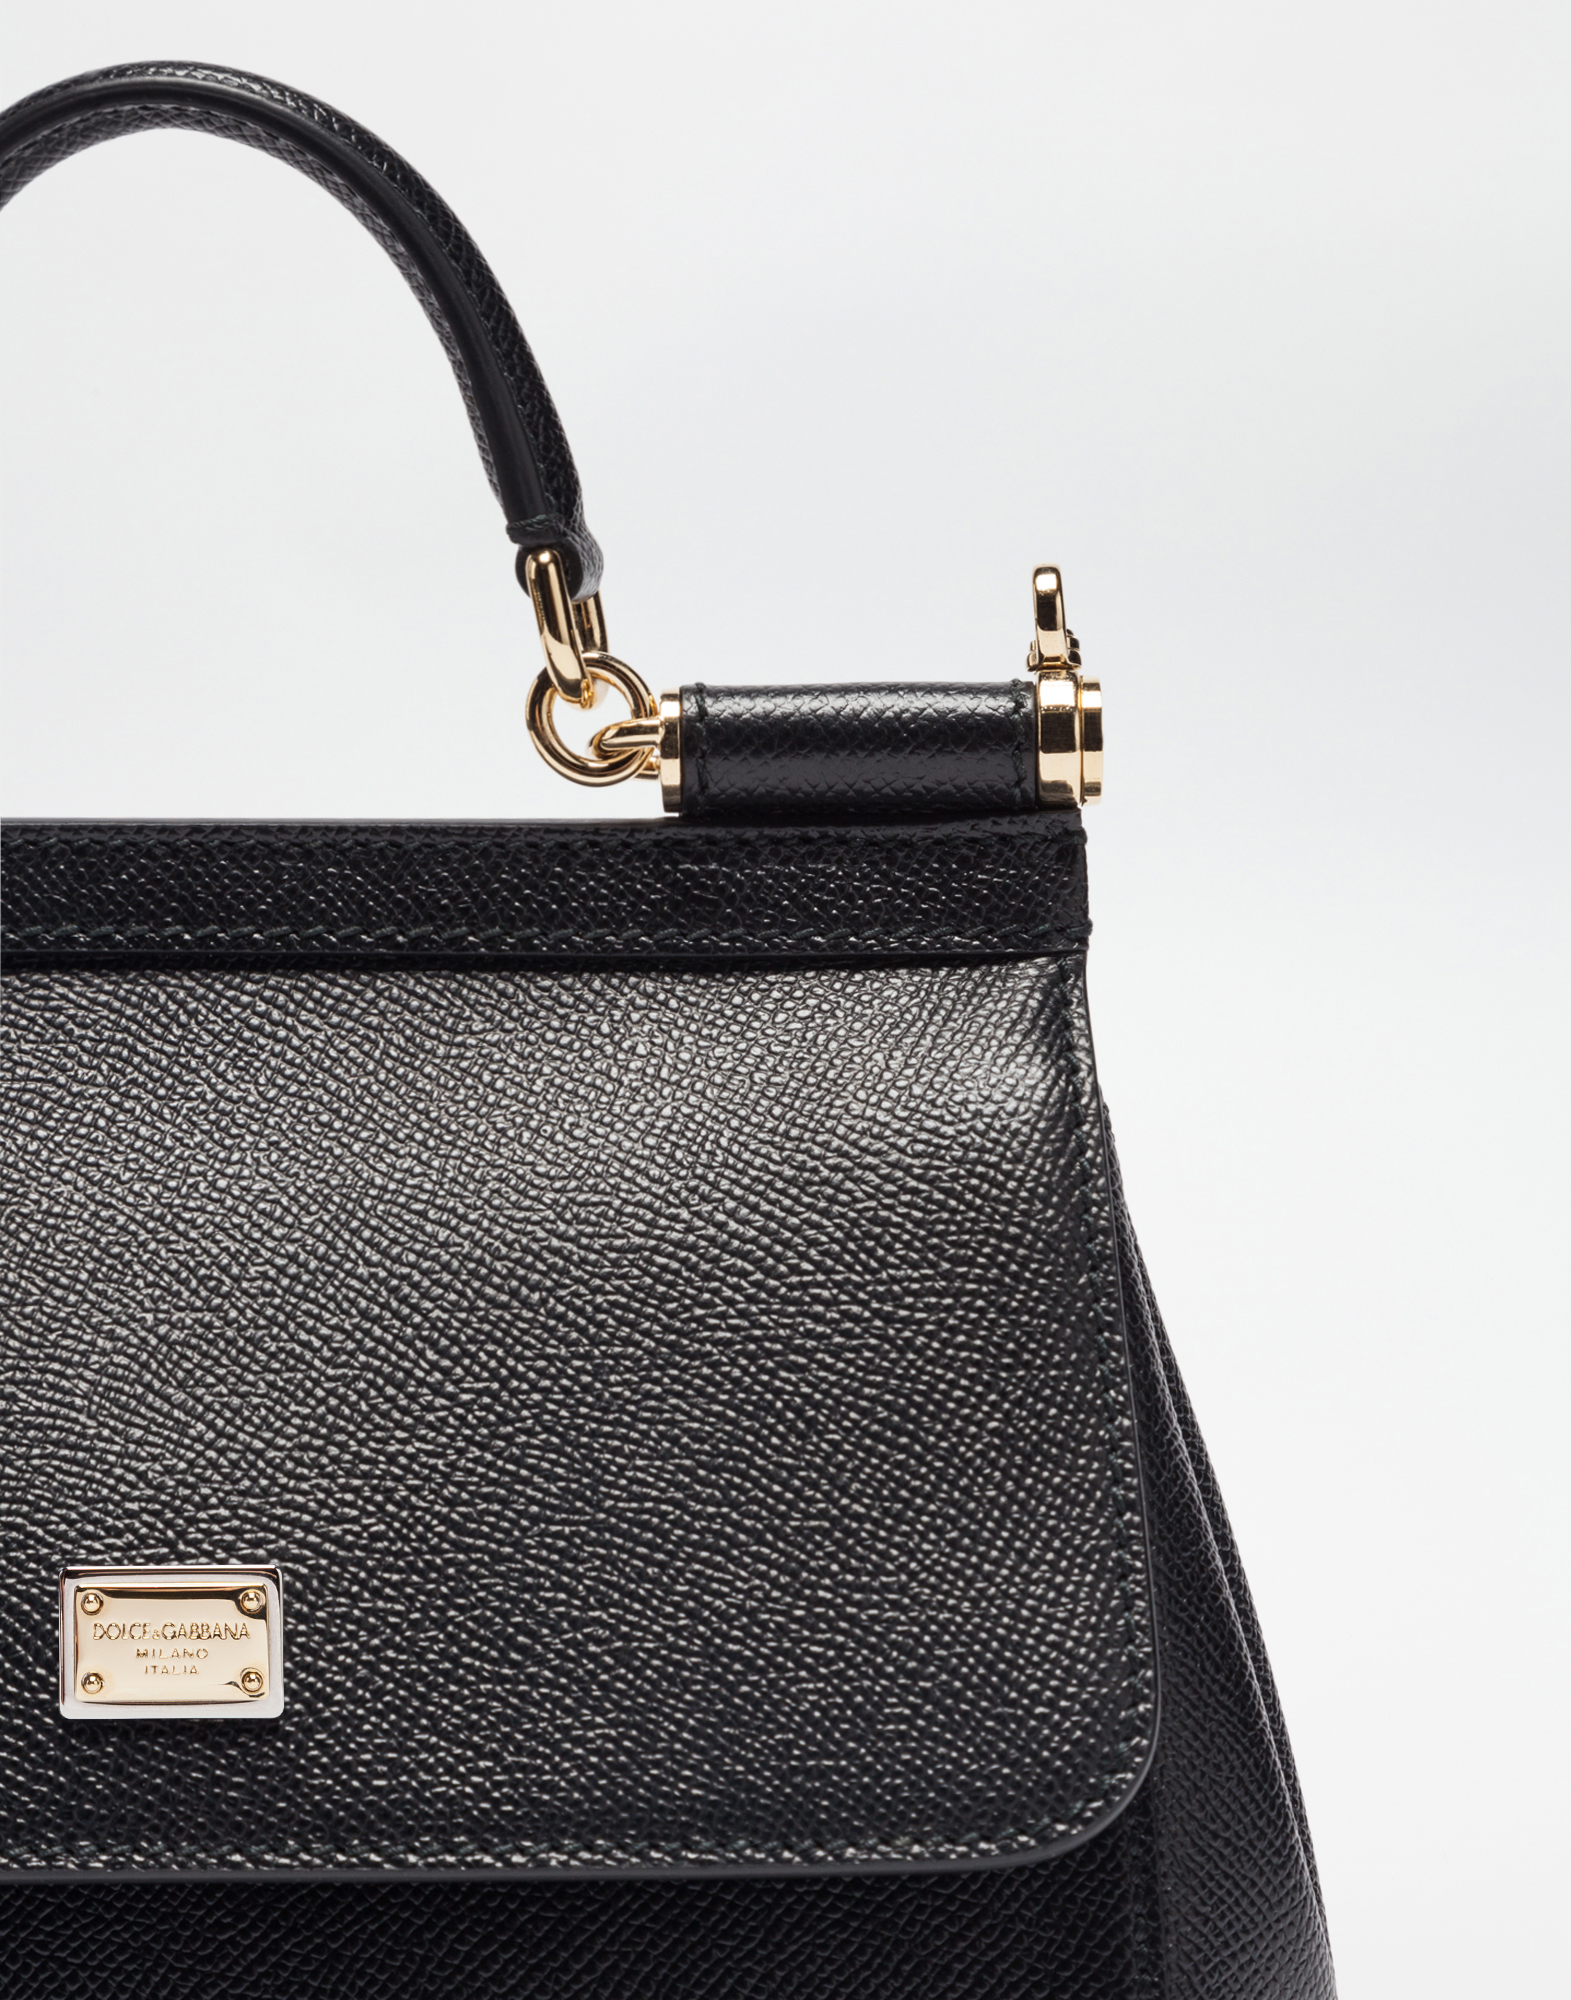 SMALL DAUPHINE LEATHER SICILY BAG